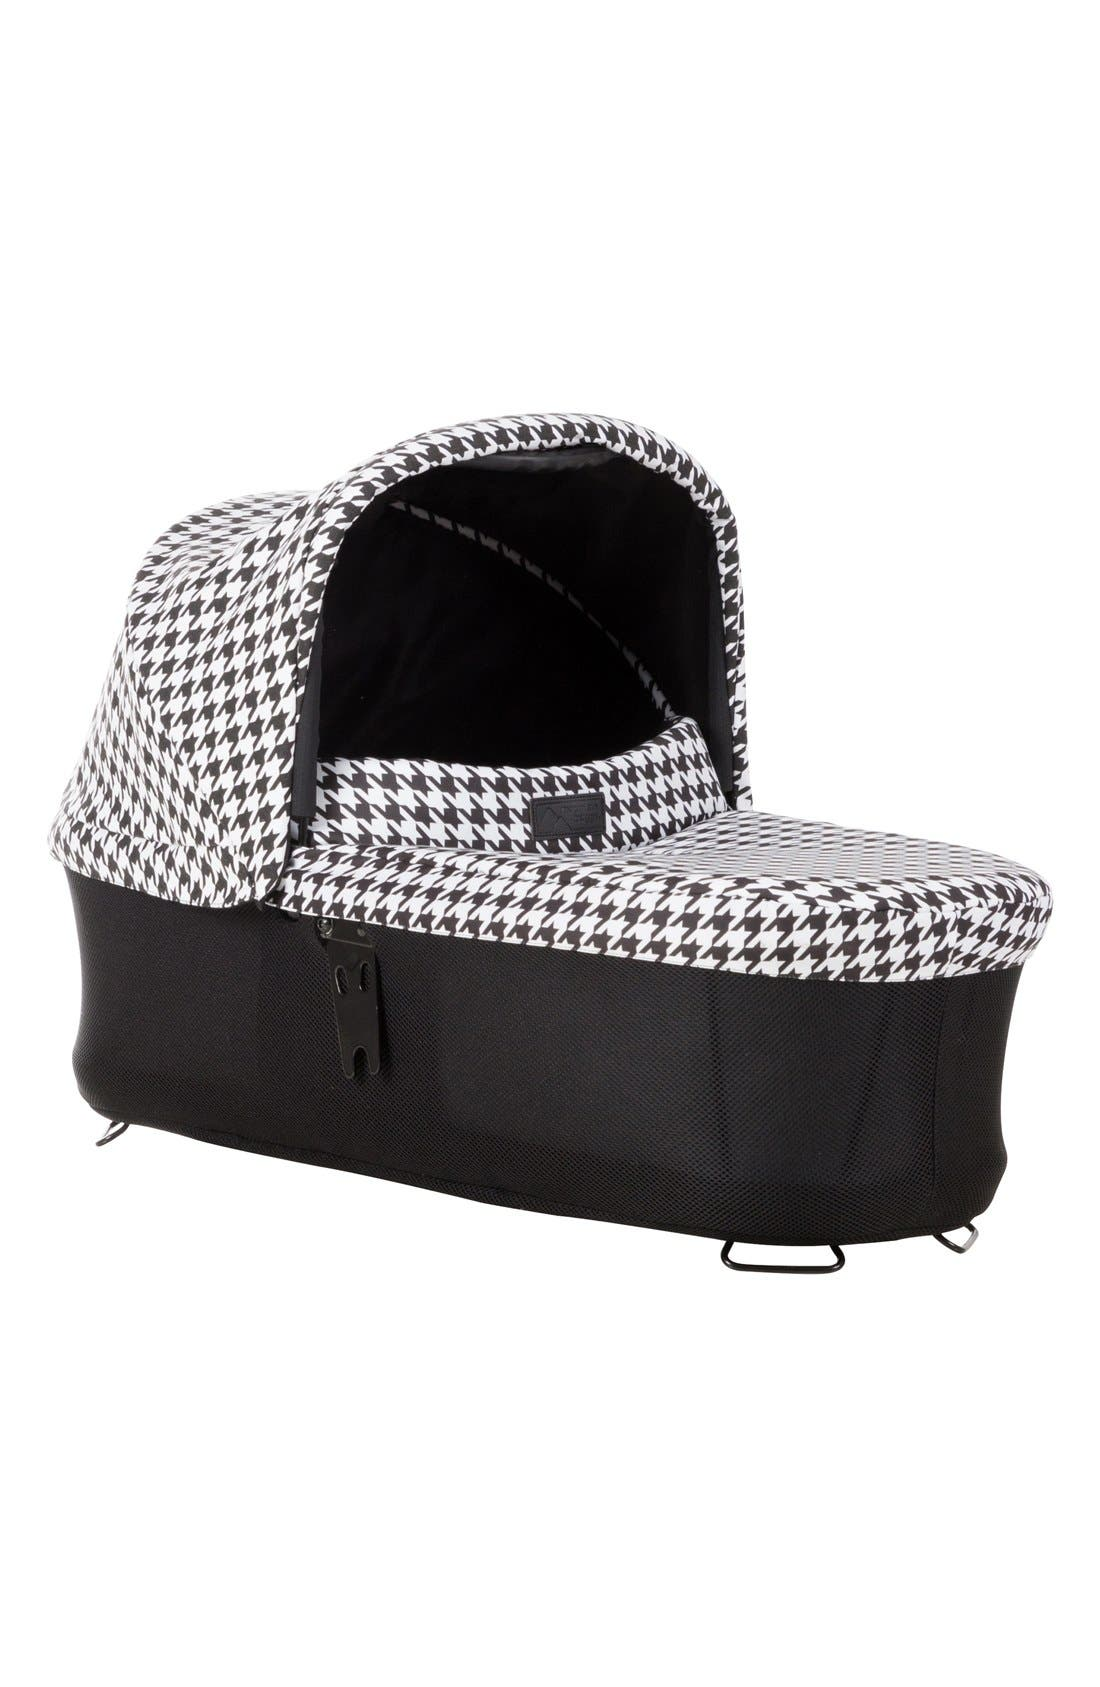 Main Image - mountain buggy Urban Jungle - The Luxury Collection Carrycot Plus